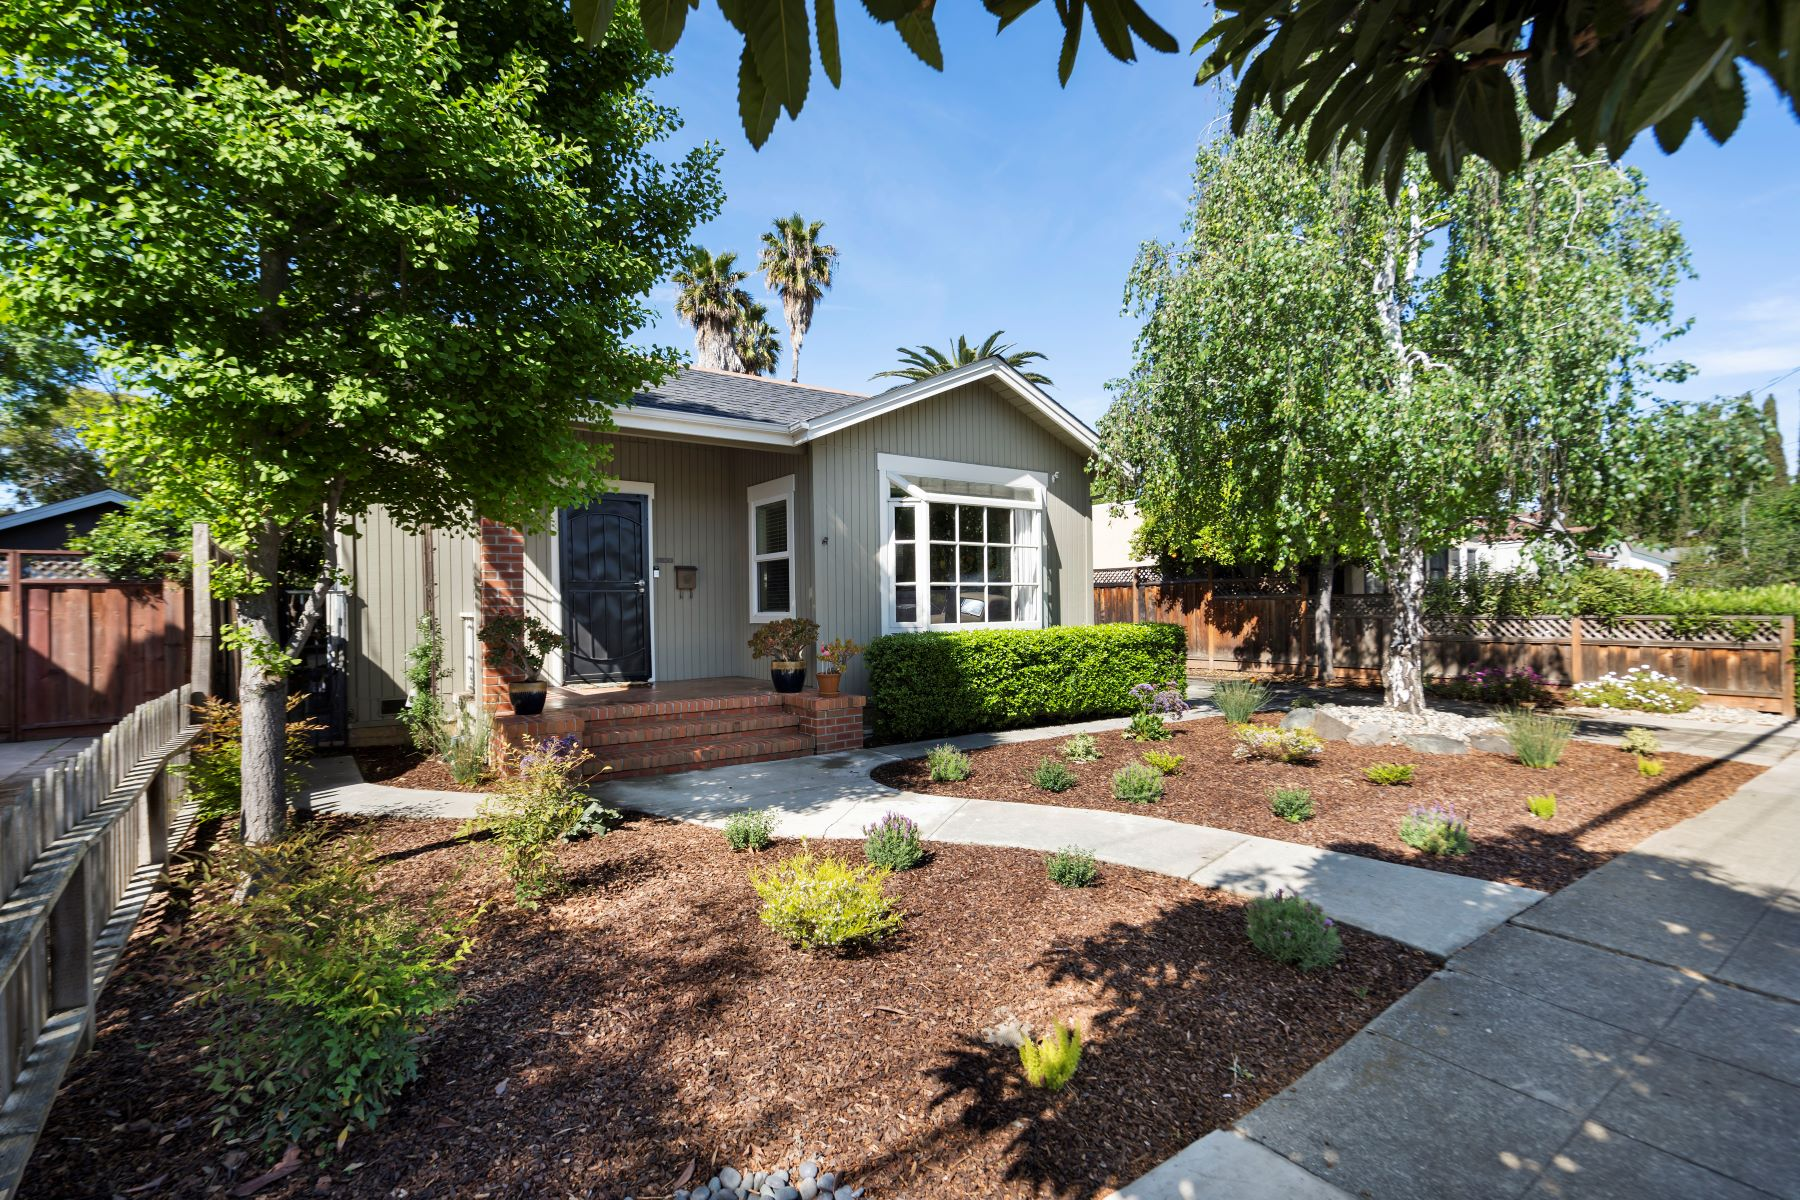 Single Family Homes for Active at Charming California Bungalow 1160 Woodrow Street Redwood City, California 94061 United States